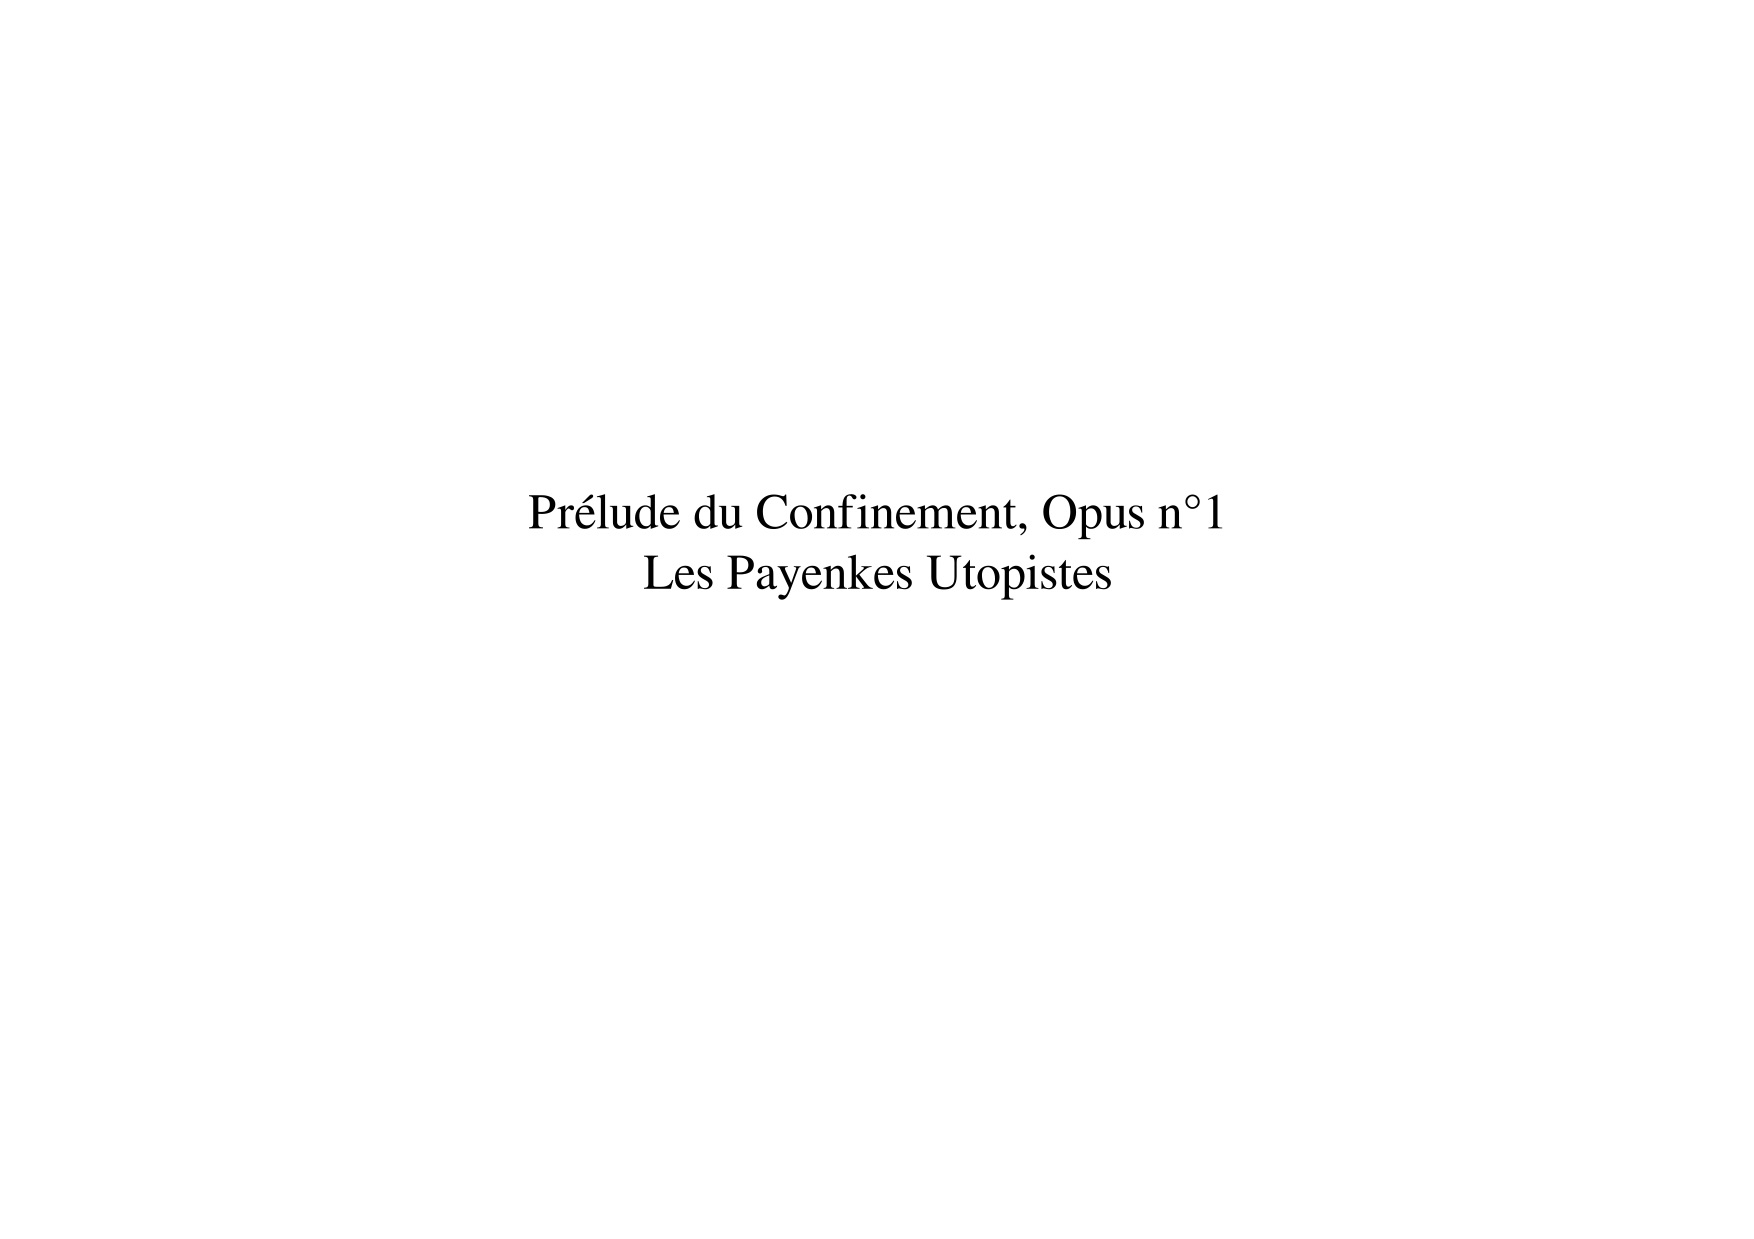 Prélude du Confinement, Opus n°1